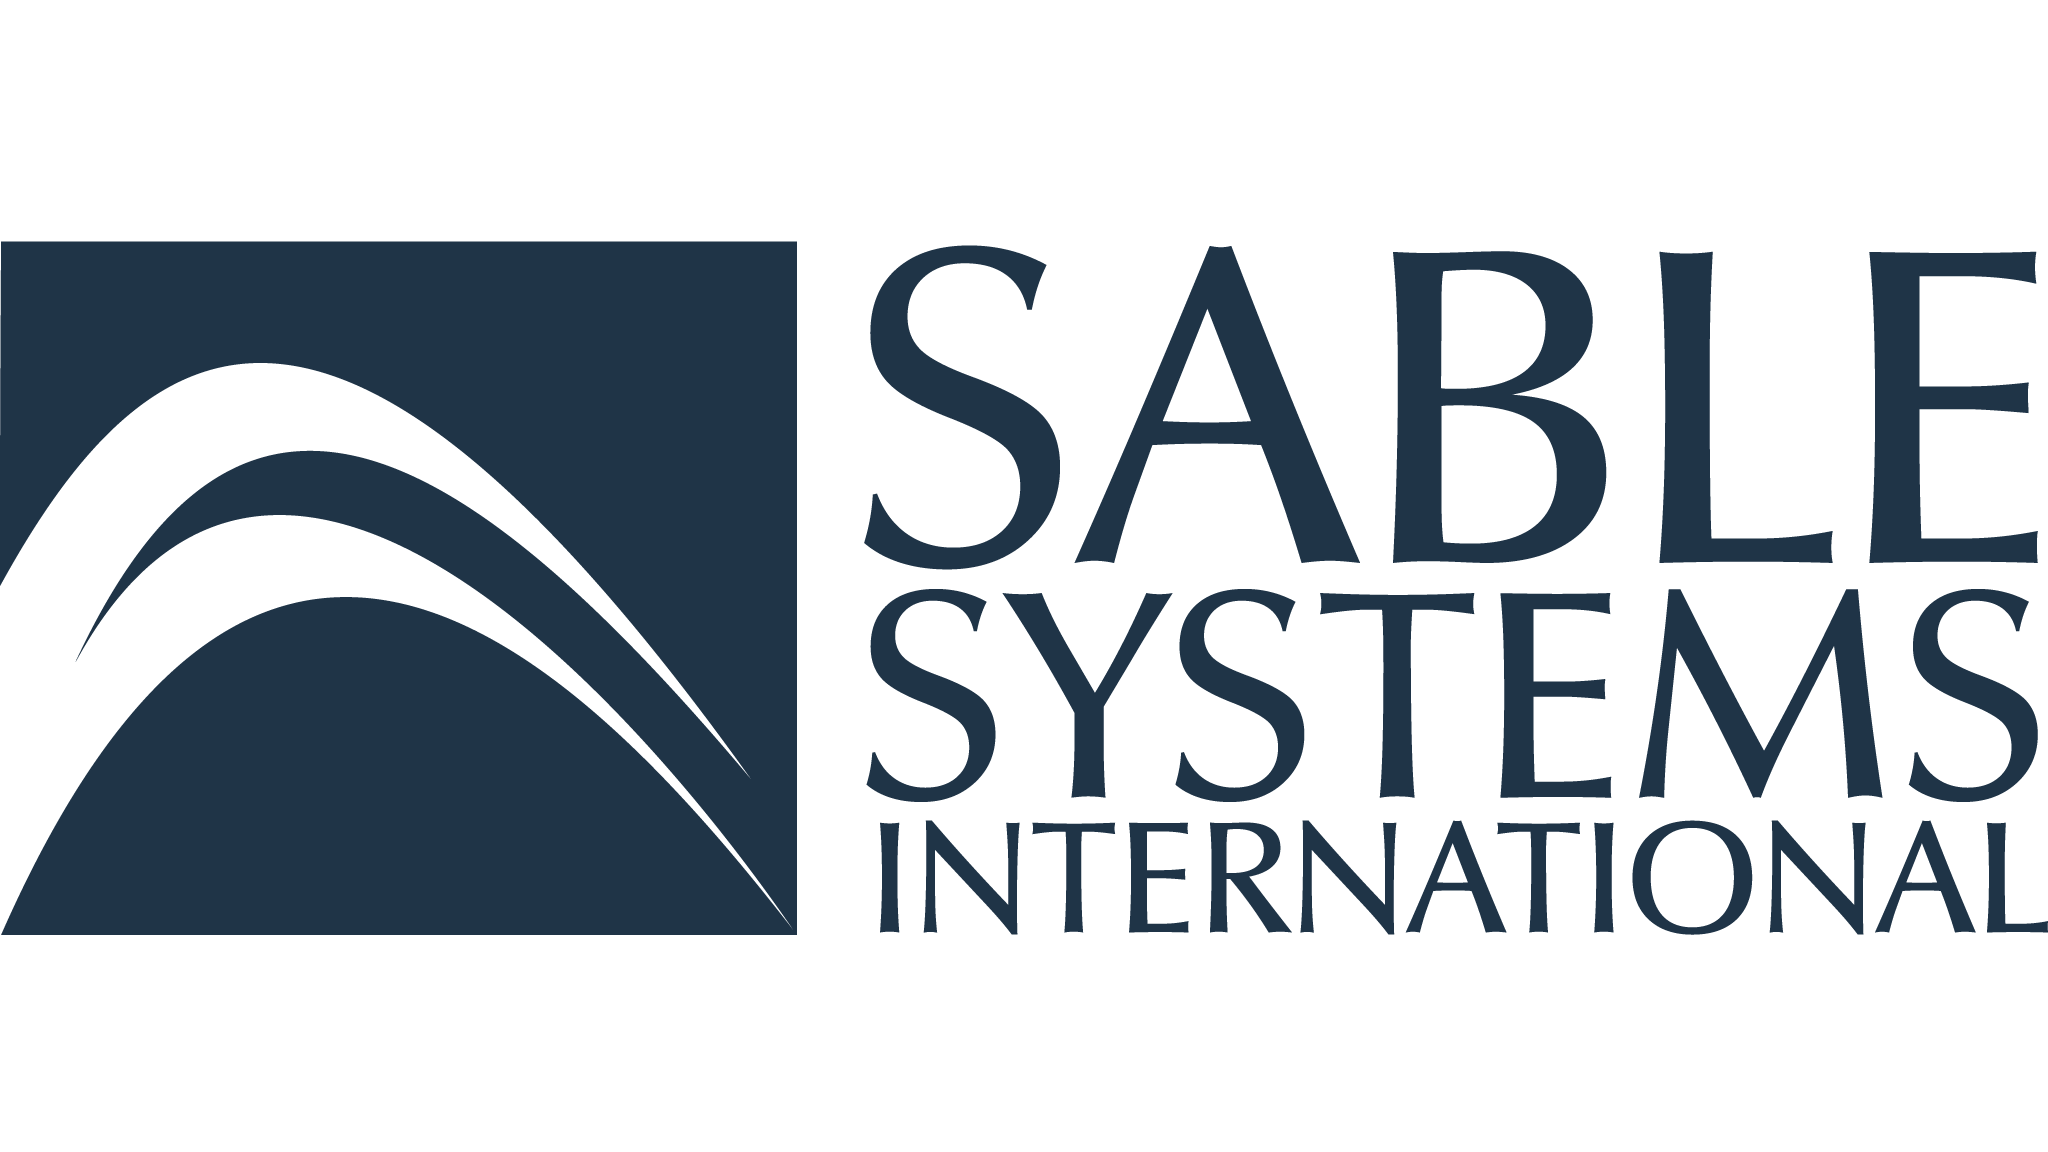 Sable Systems International logo